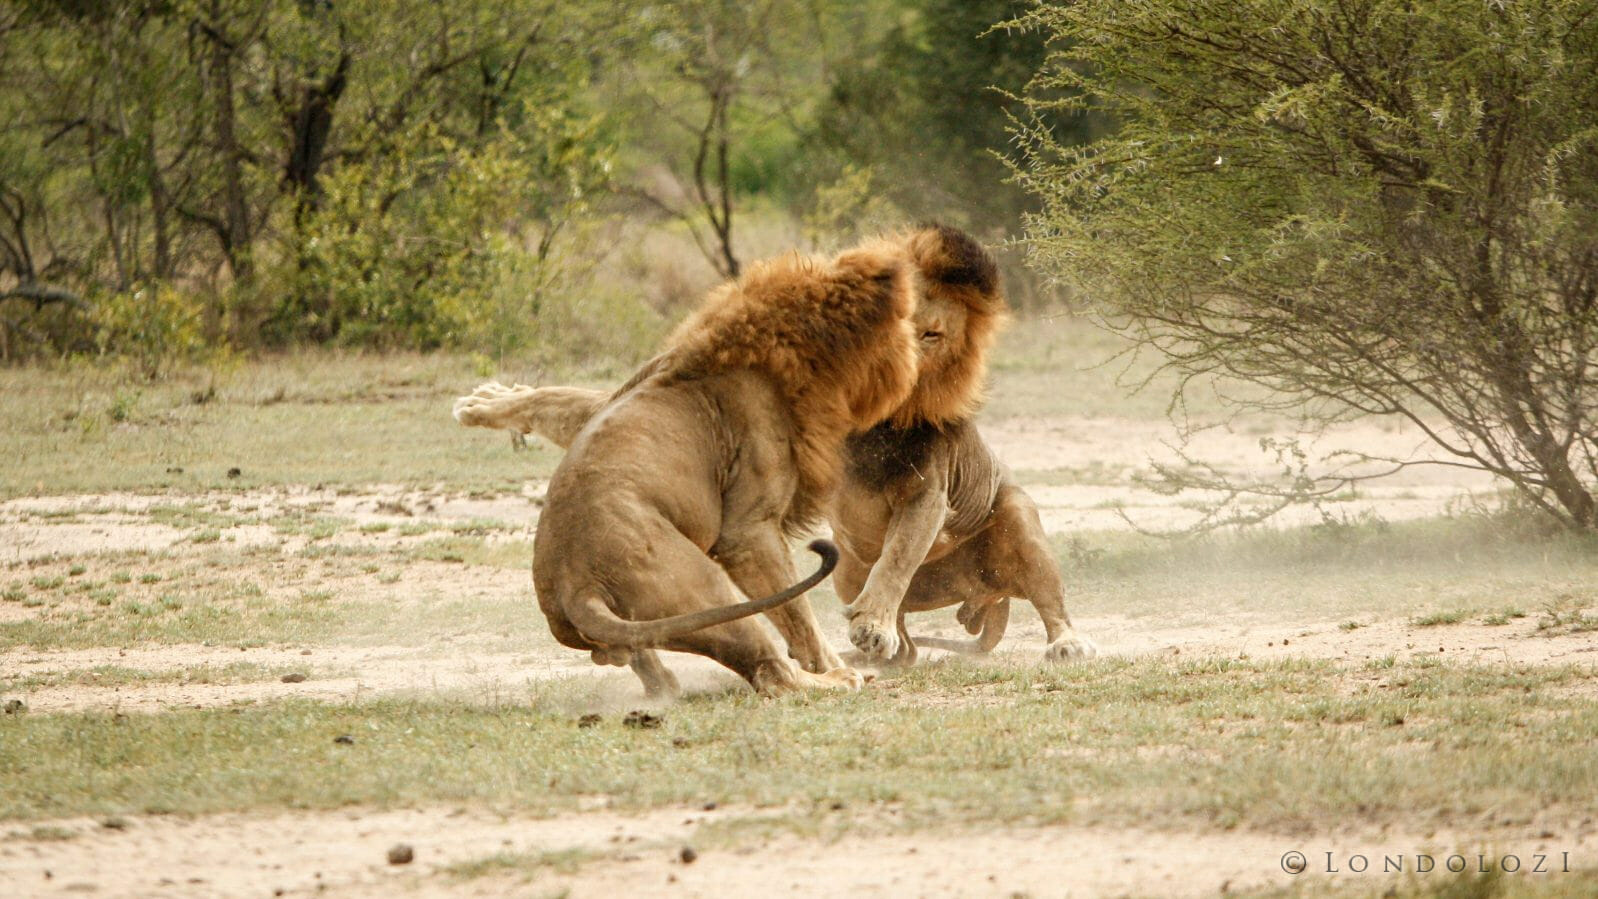 Majingilane Lion Fight